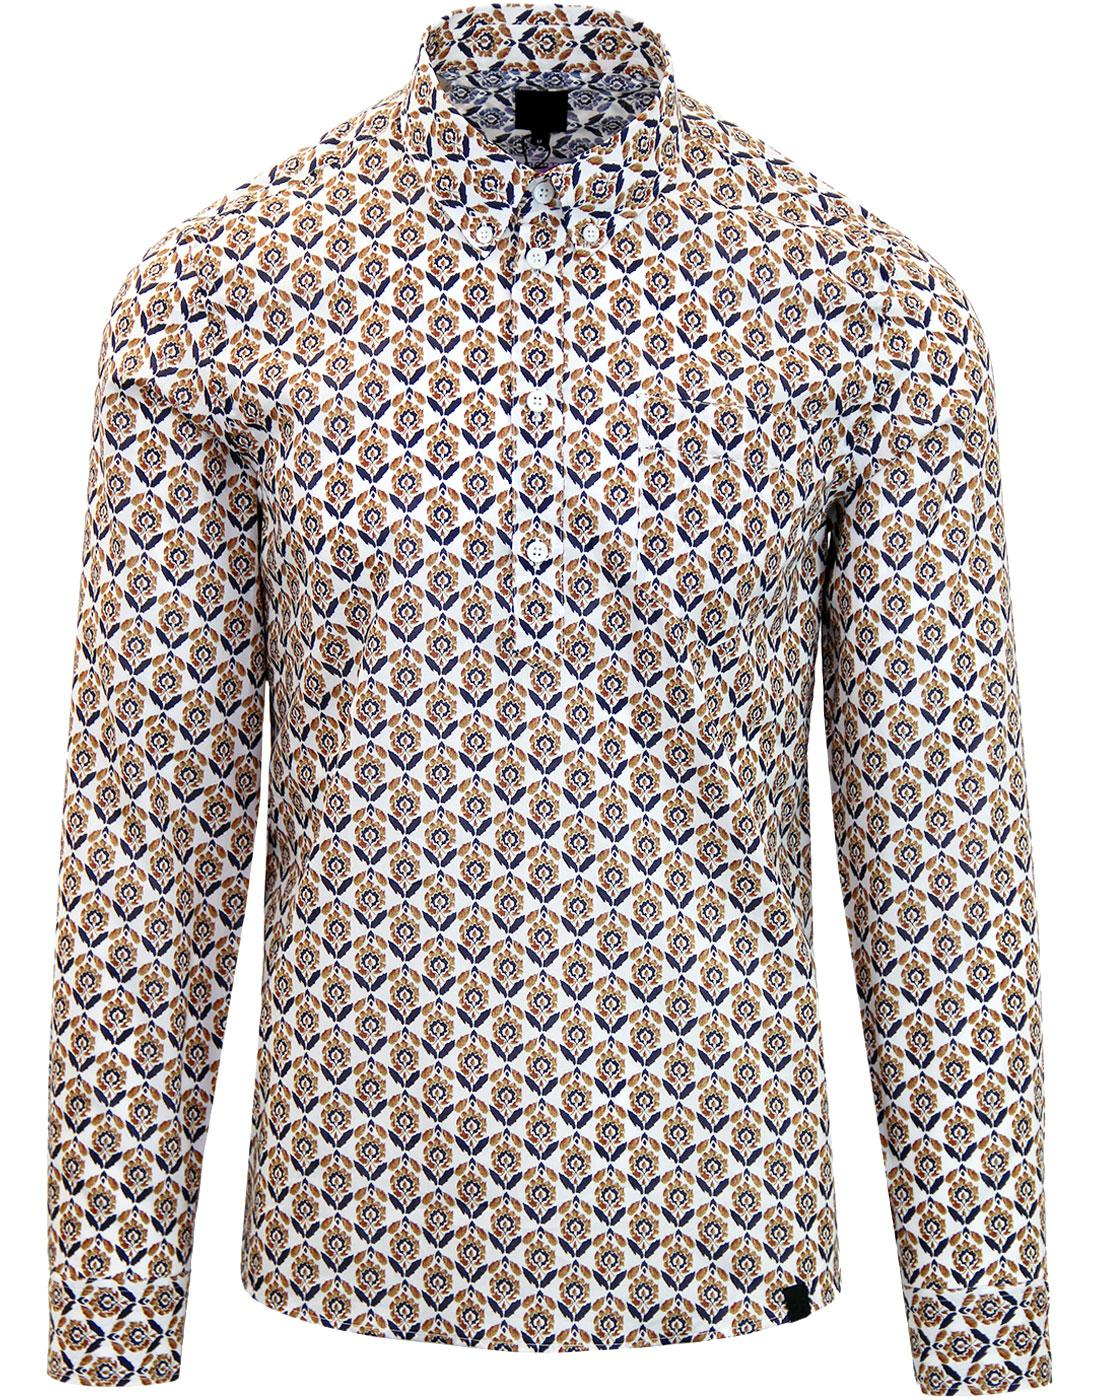 PRETTY GREEN Retro Liberty Floral Print Shirt BR